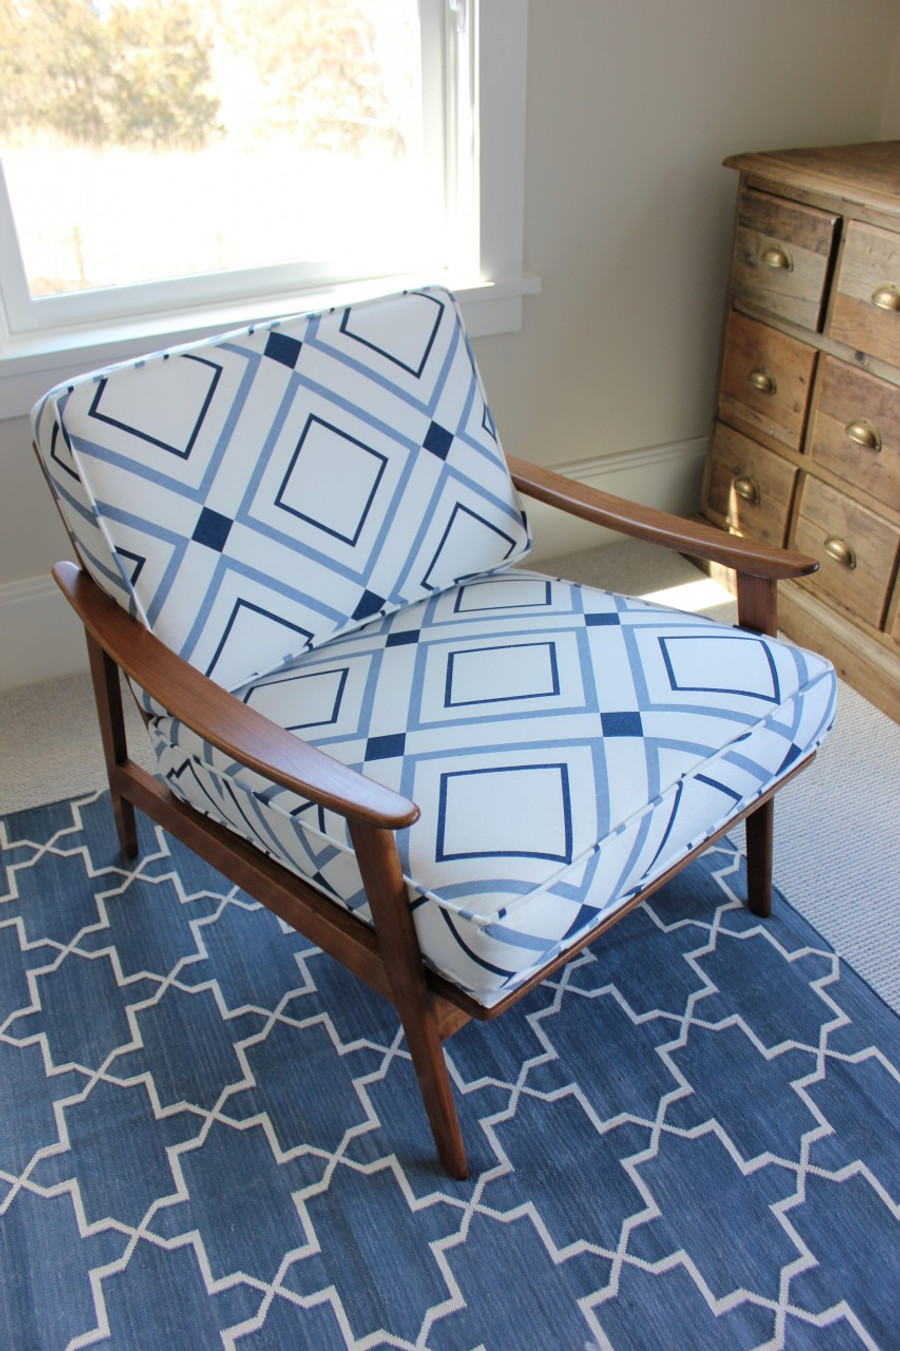 Chair in Victoria Hagan Diamond Lights 4015-02 Denim Indigo